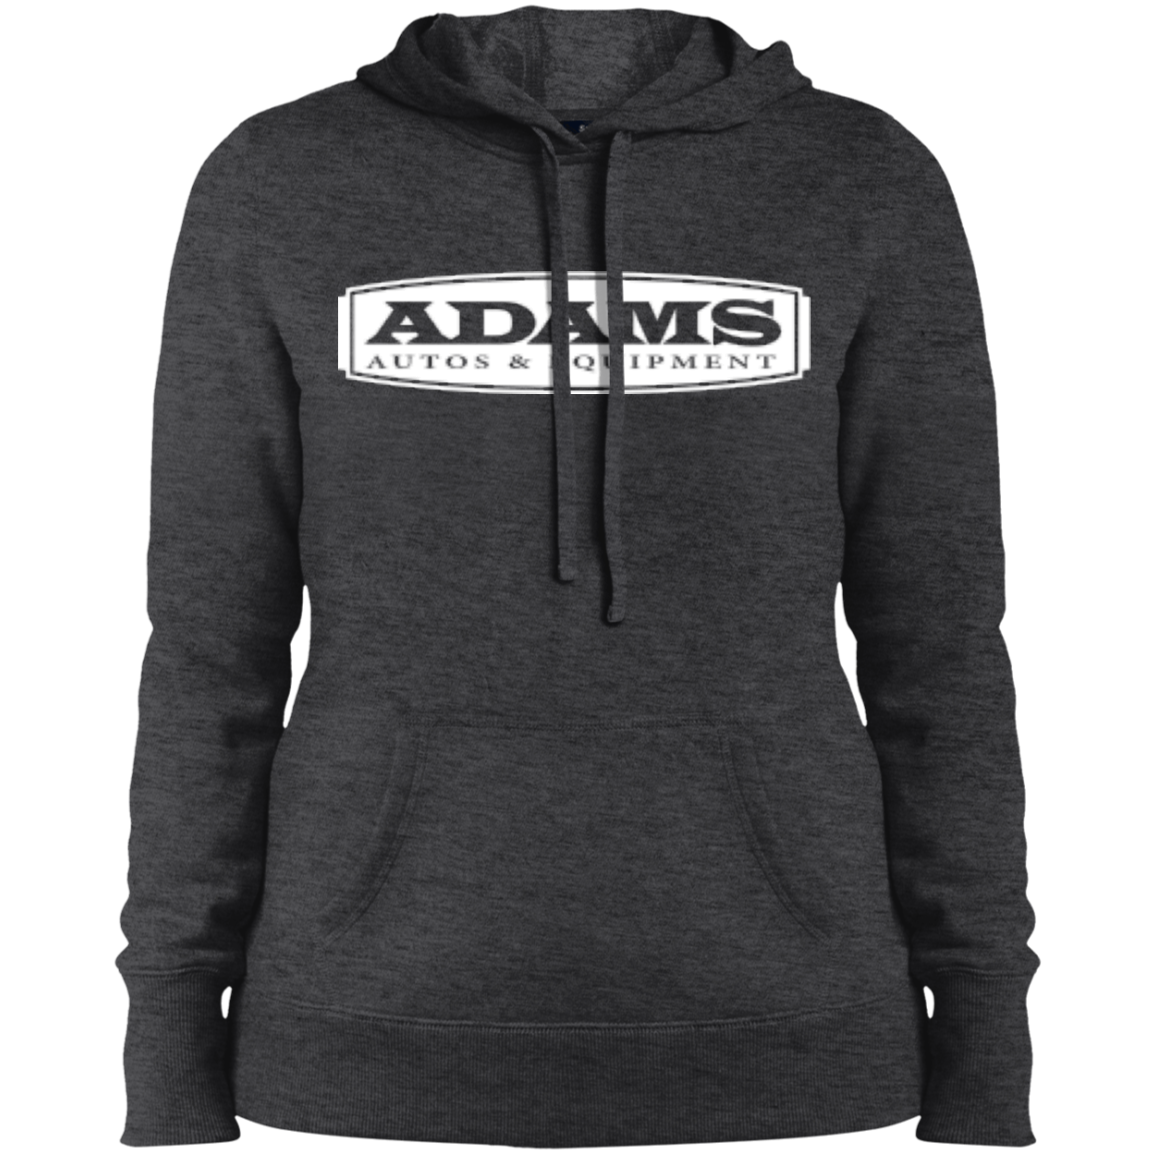 Adams Autos Ladies' Pullover Hooded Sweatshirt